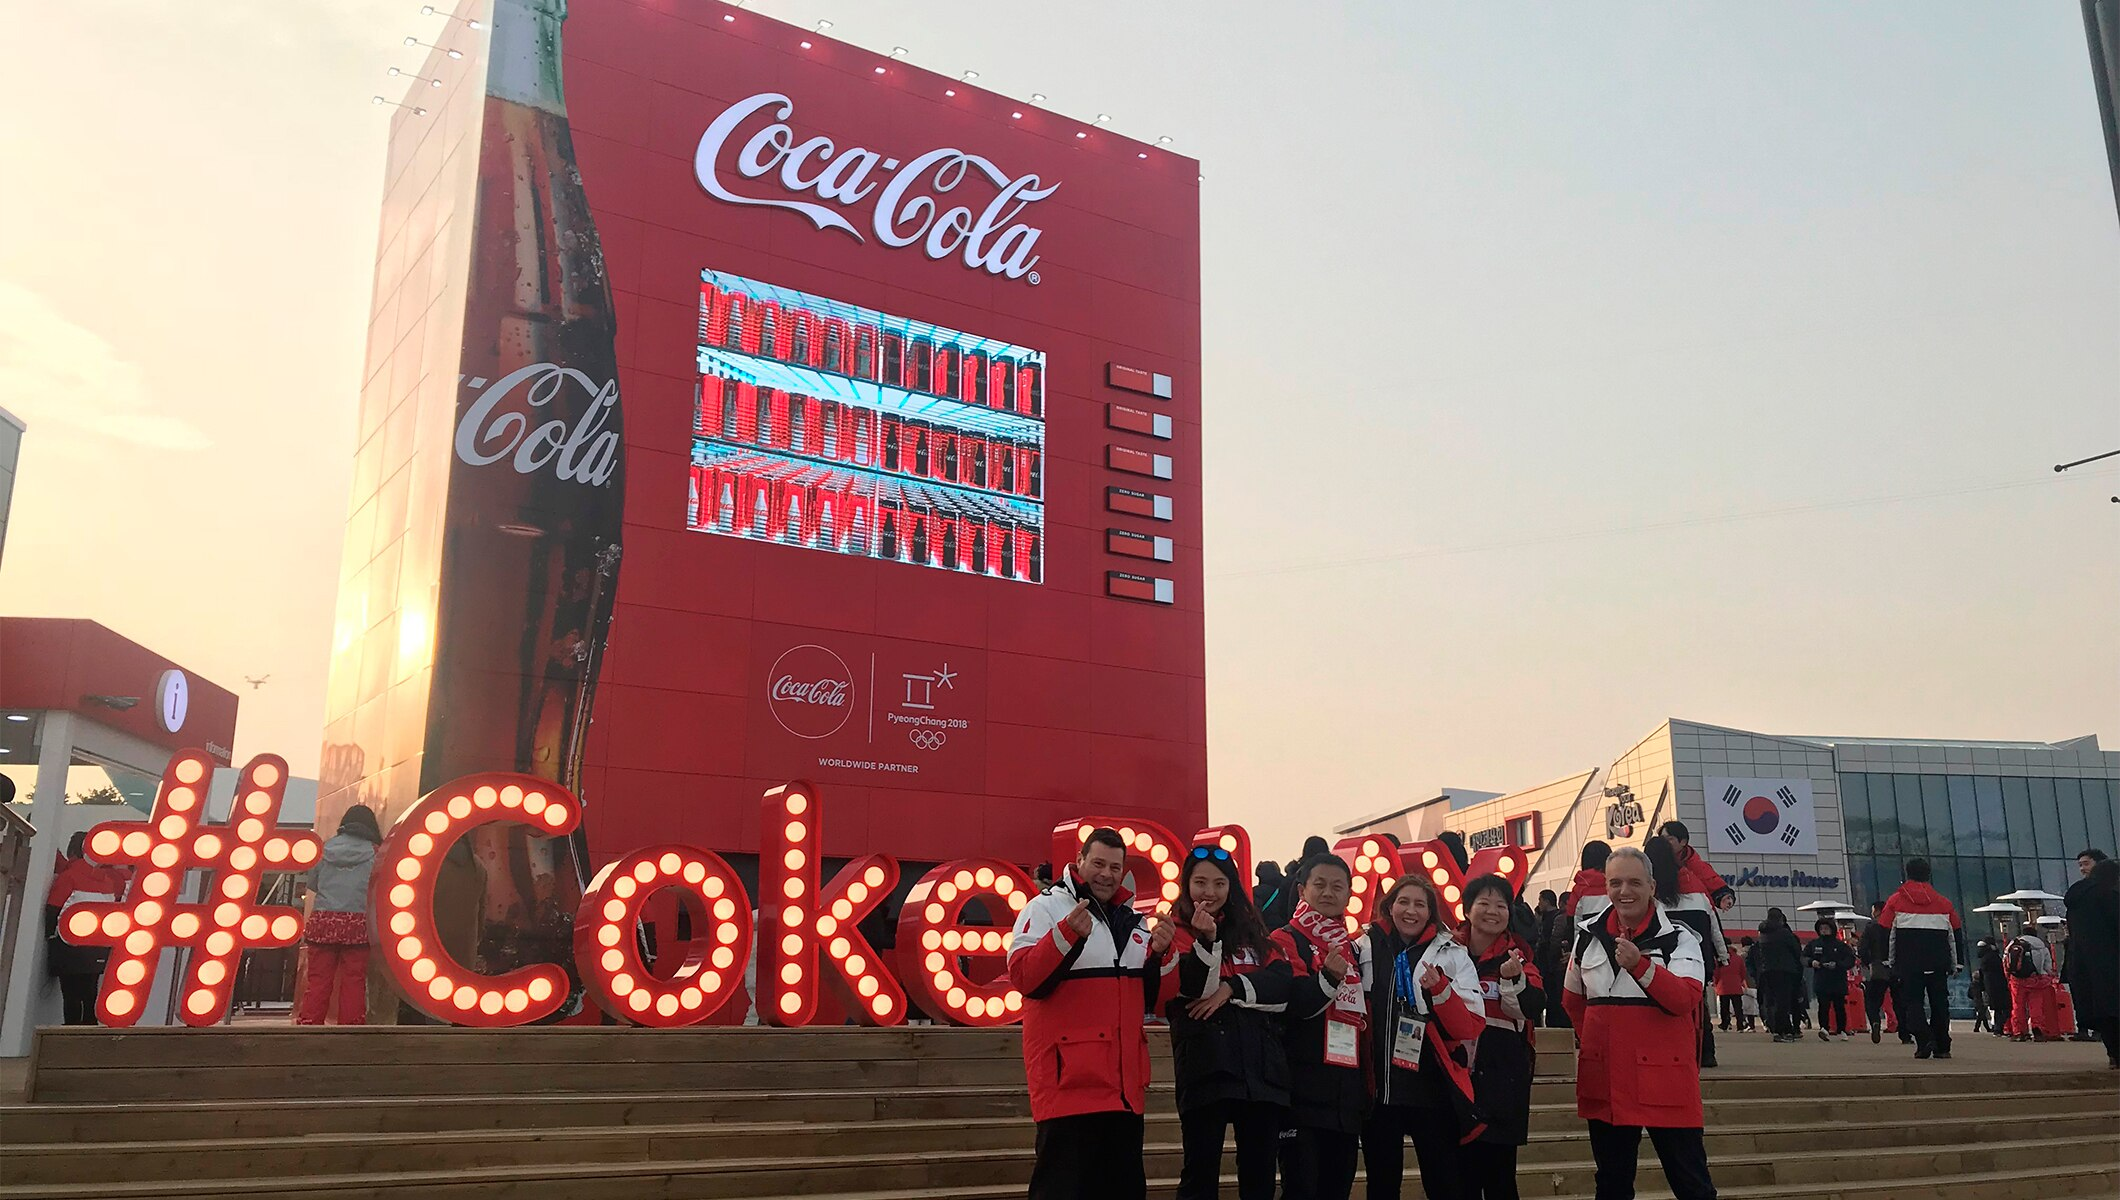 """The Olympic Games is the one thing that talks to everyone"": Coca-Cola's Ricardo Fort on the enduring appeal of an Olympic Partnership"